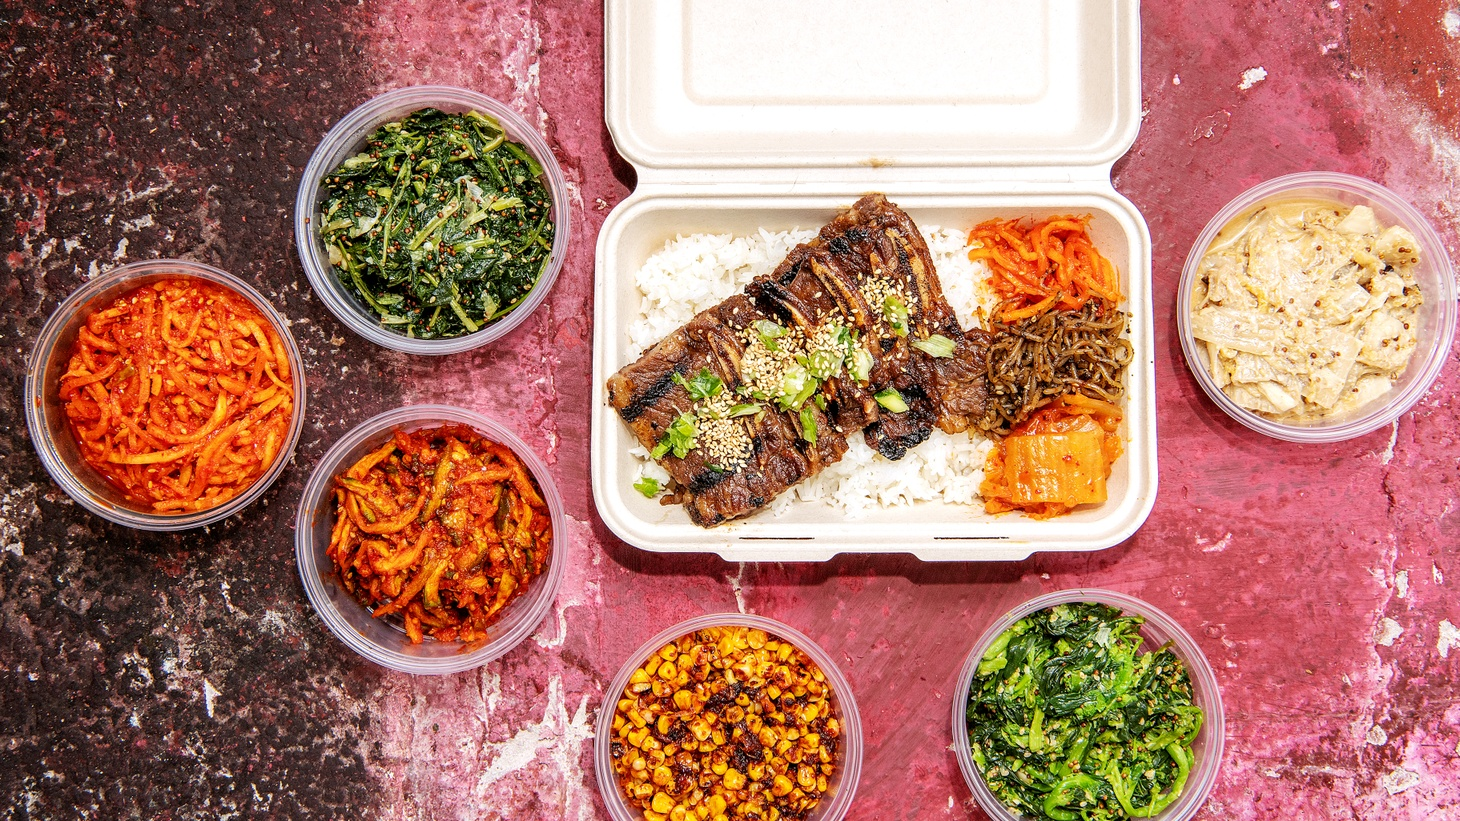 Los Angeles Times restaurant critic Bill Addison reviews Shiku, the new Korean casual spot by Chef Kwang Uh and Mina Park in the Grand Central Market.